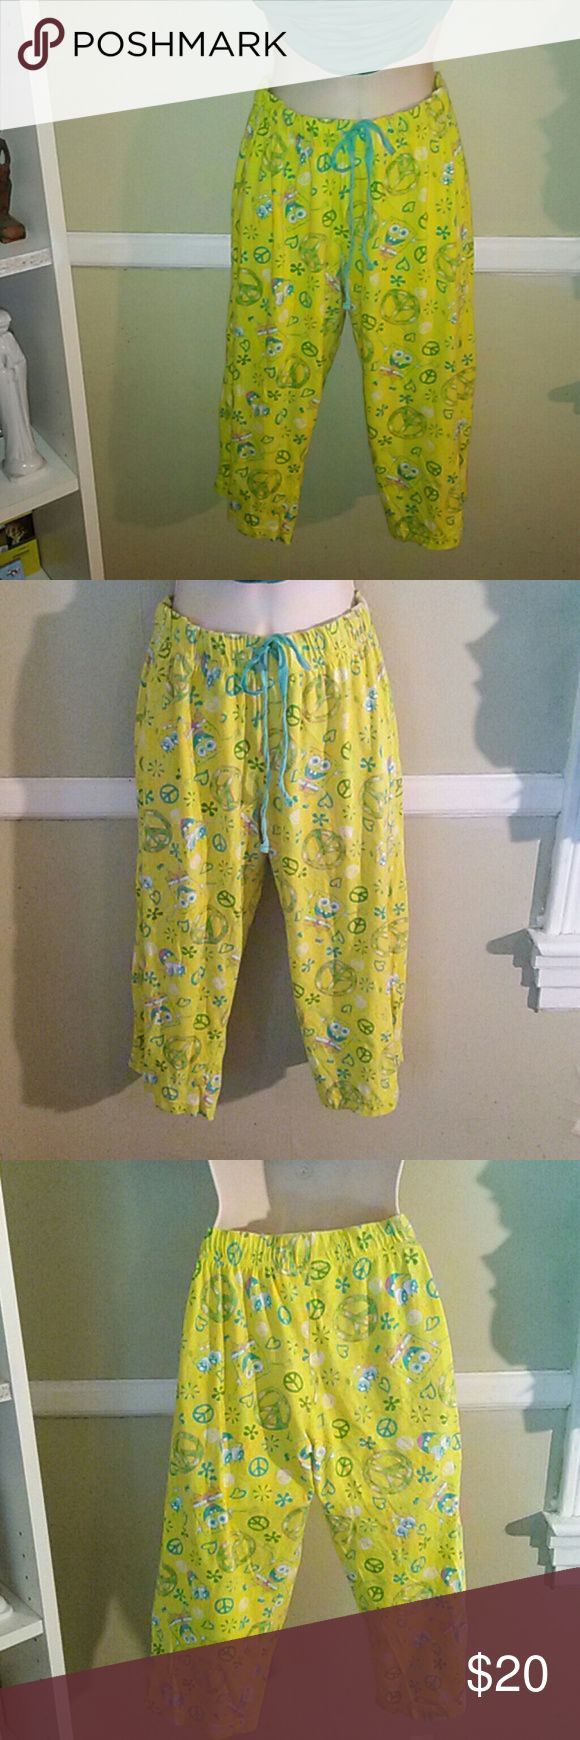 Viacom Stephen Hillenburg creation capris Multi color Viacom Stephen Hillenburg creation Capri's yellow, teal, pink ,green,with a  elastic drawstring waist band thank you for looking Stephen Hillenburg Pants Capris